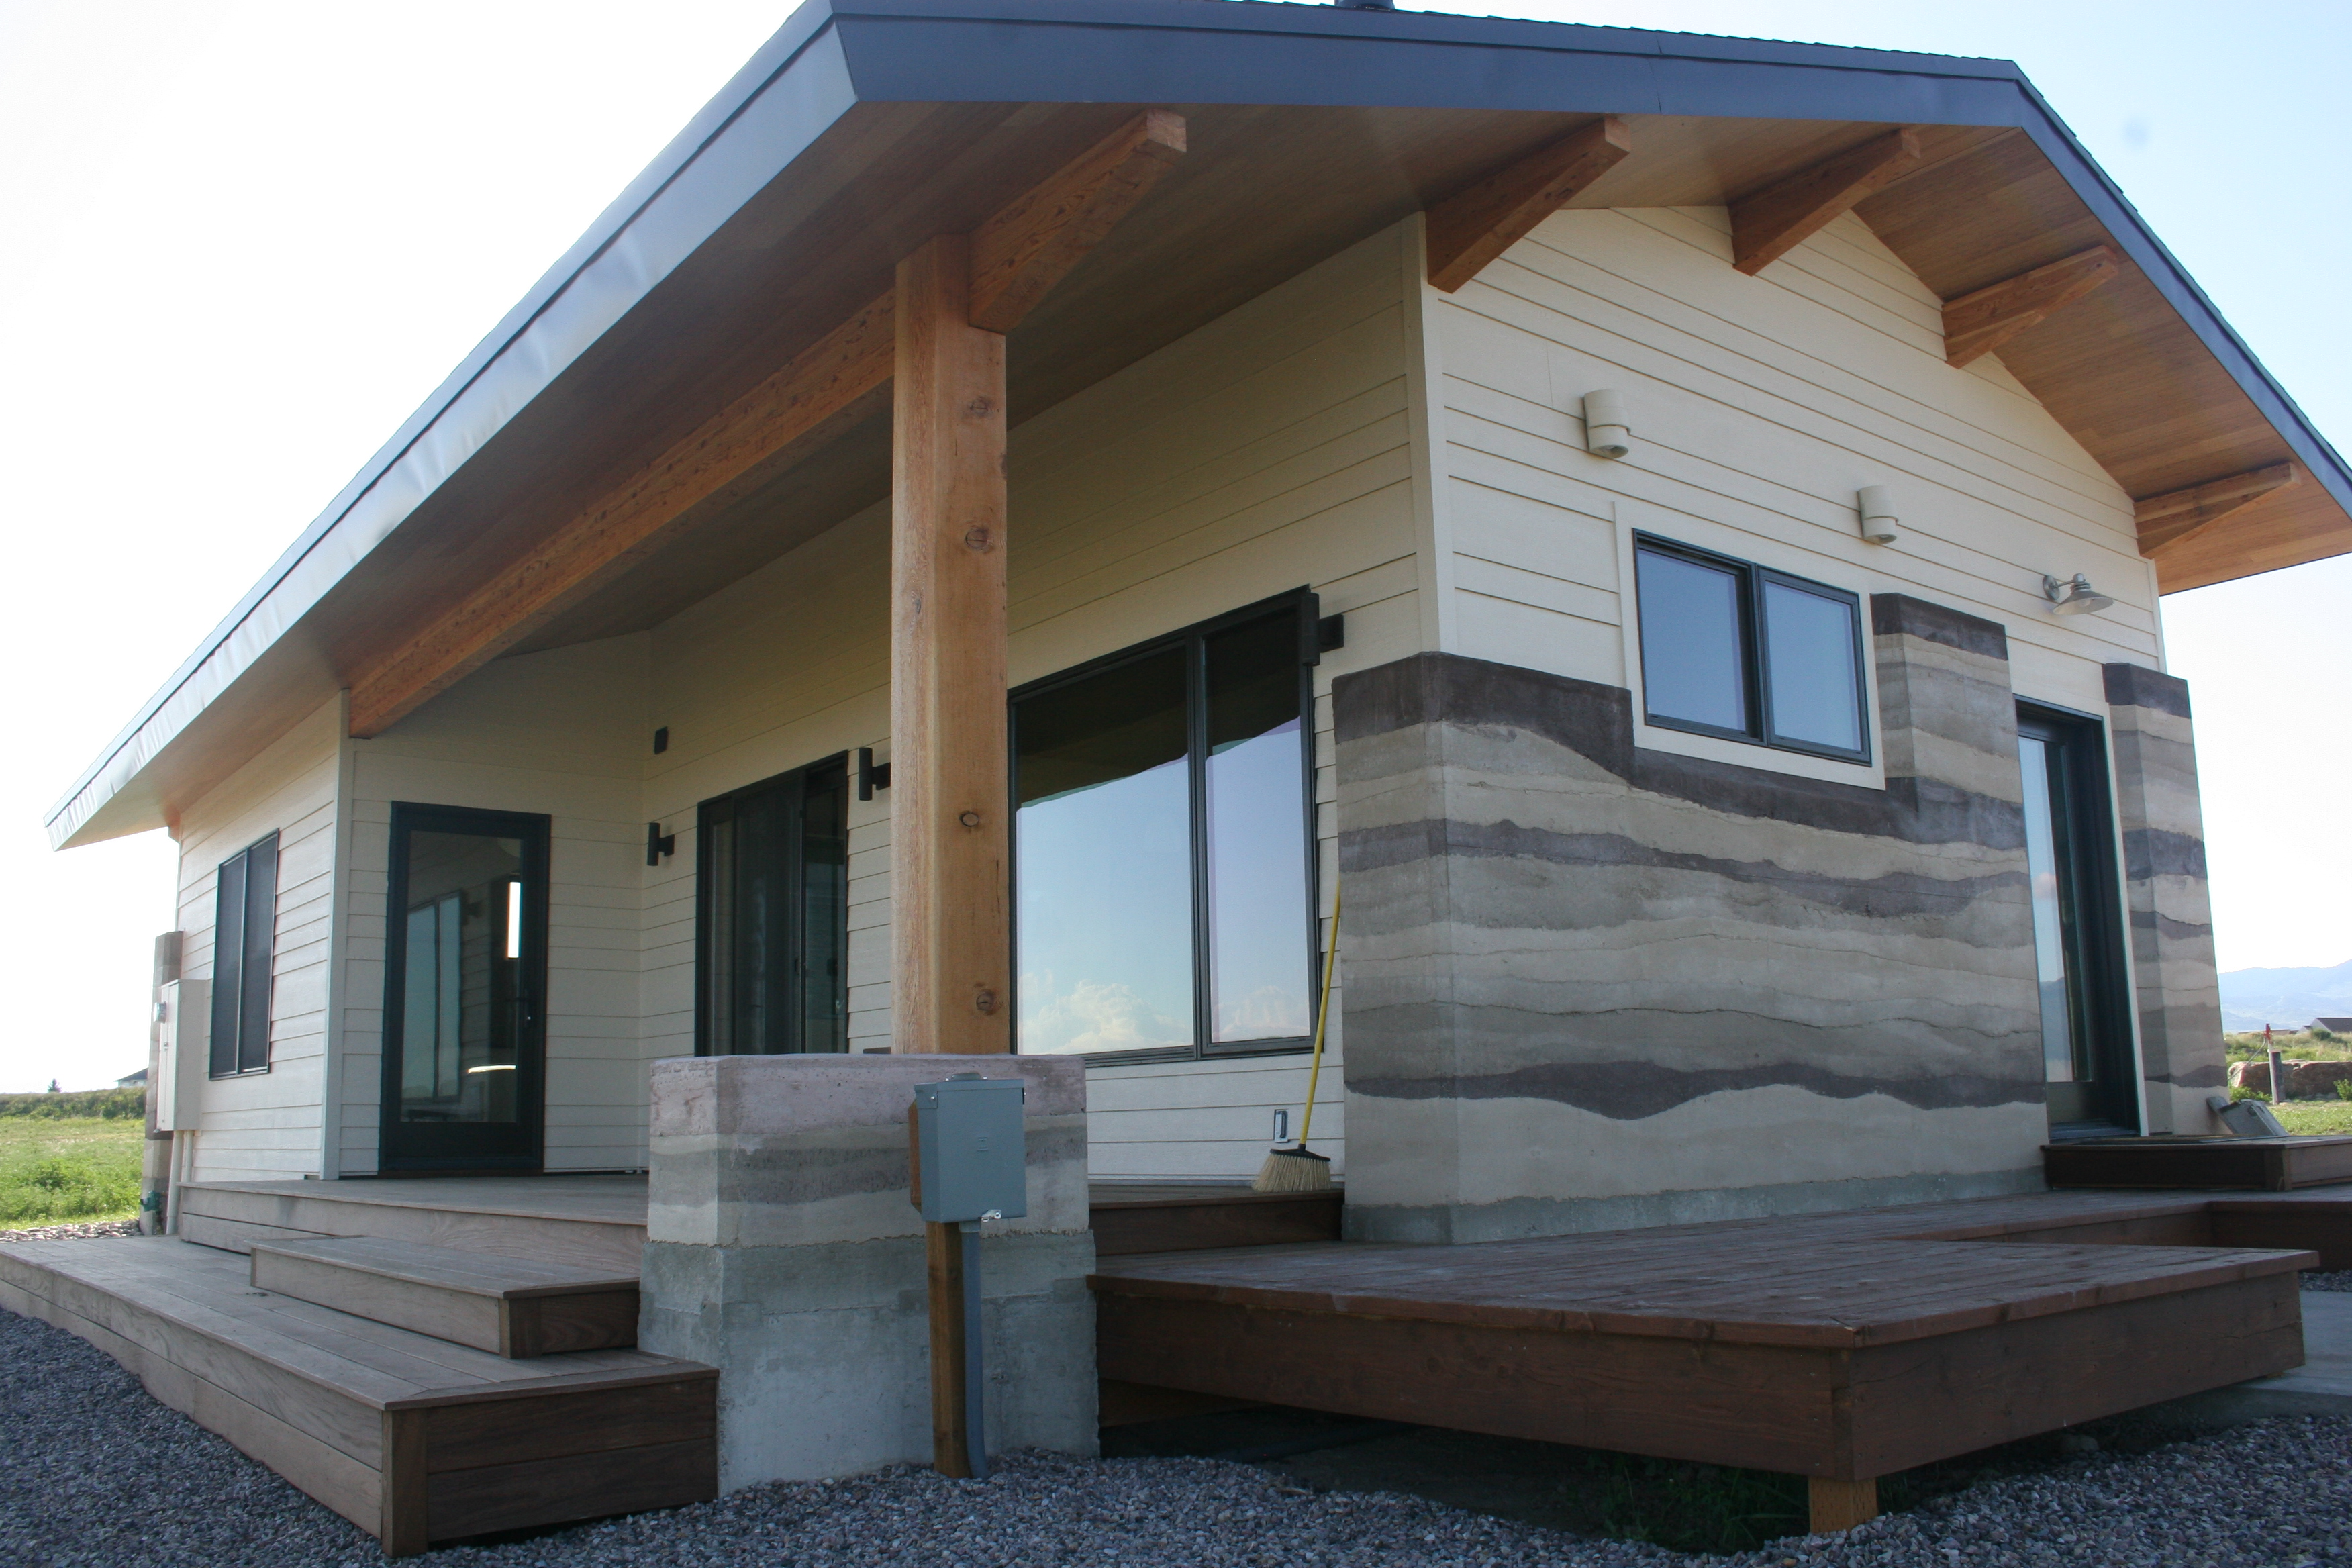 Eco-friendly building methods also includ a ground-source heat pump